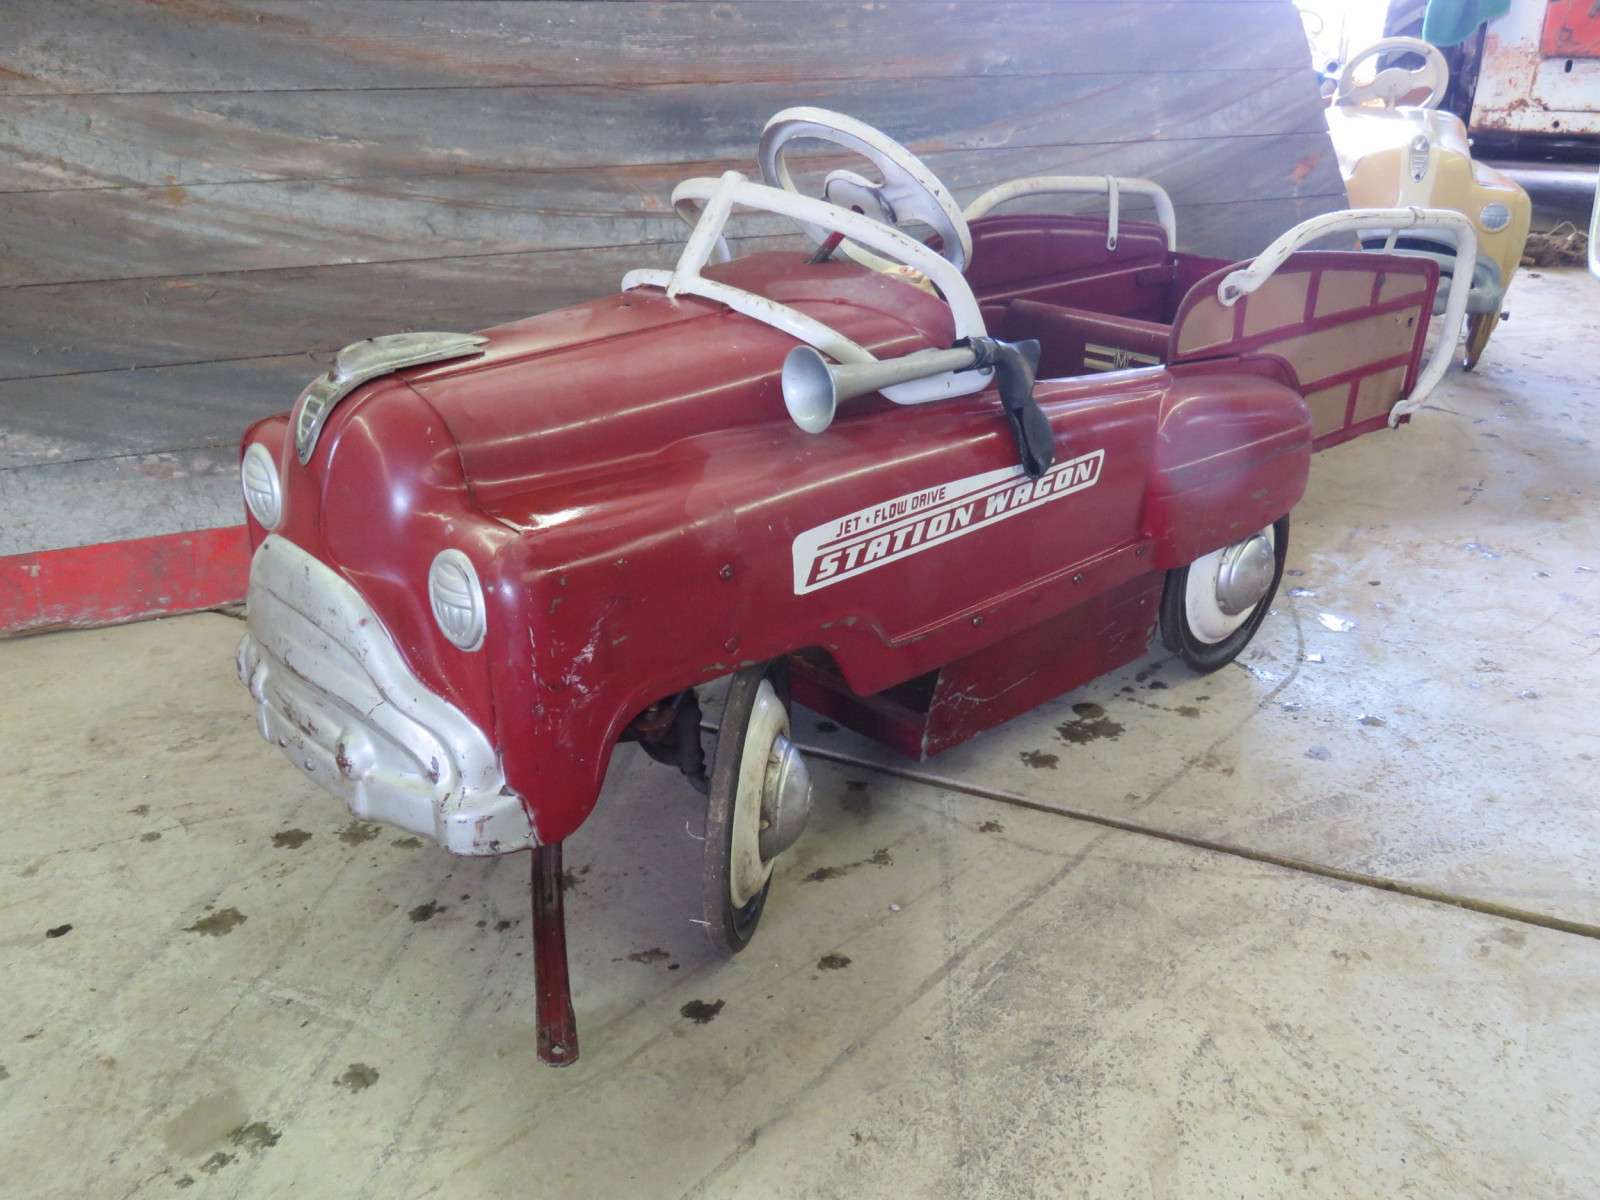 1955 Murray Station Wagon Pedal Car - Image 1